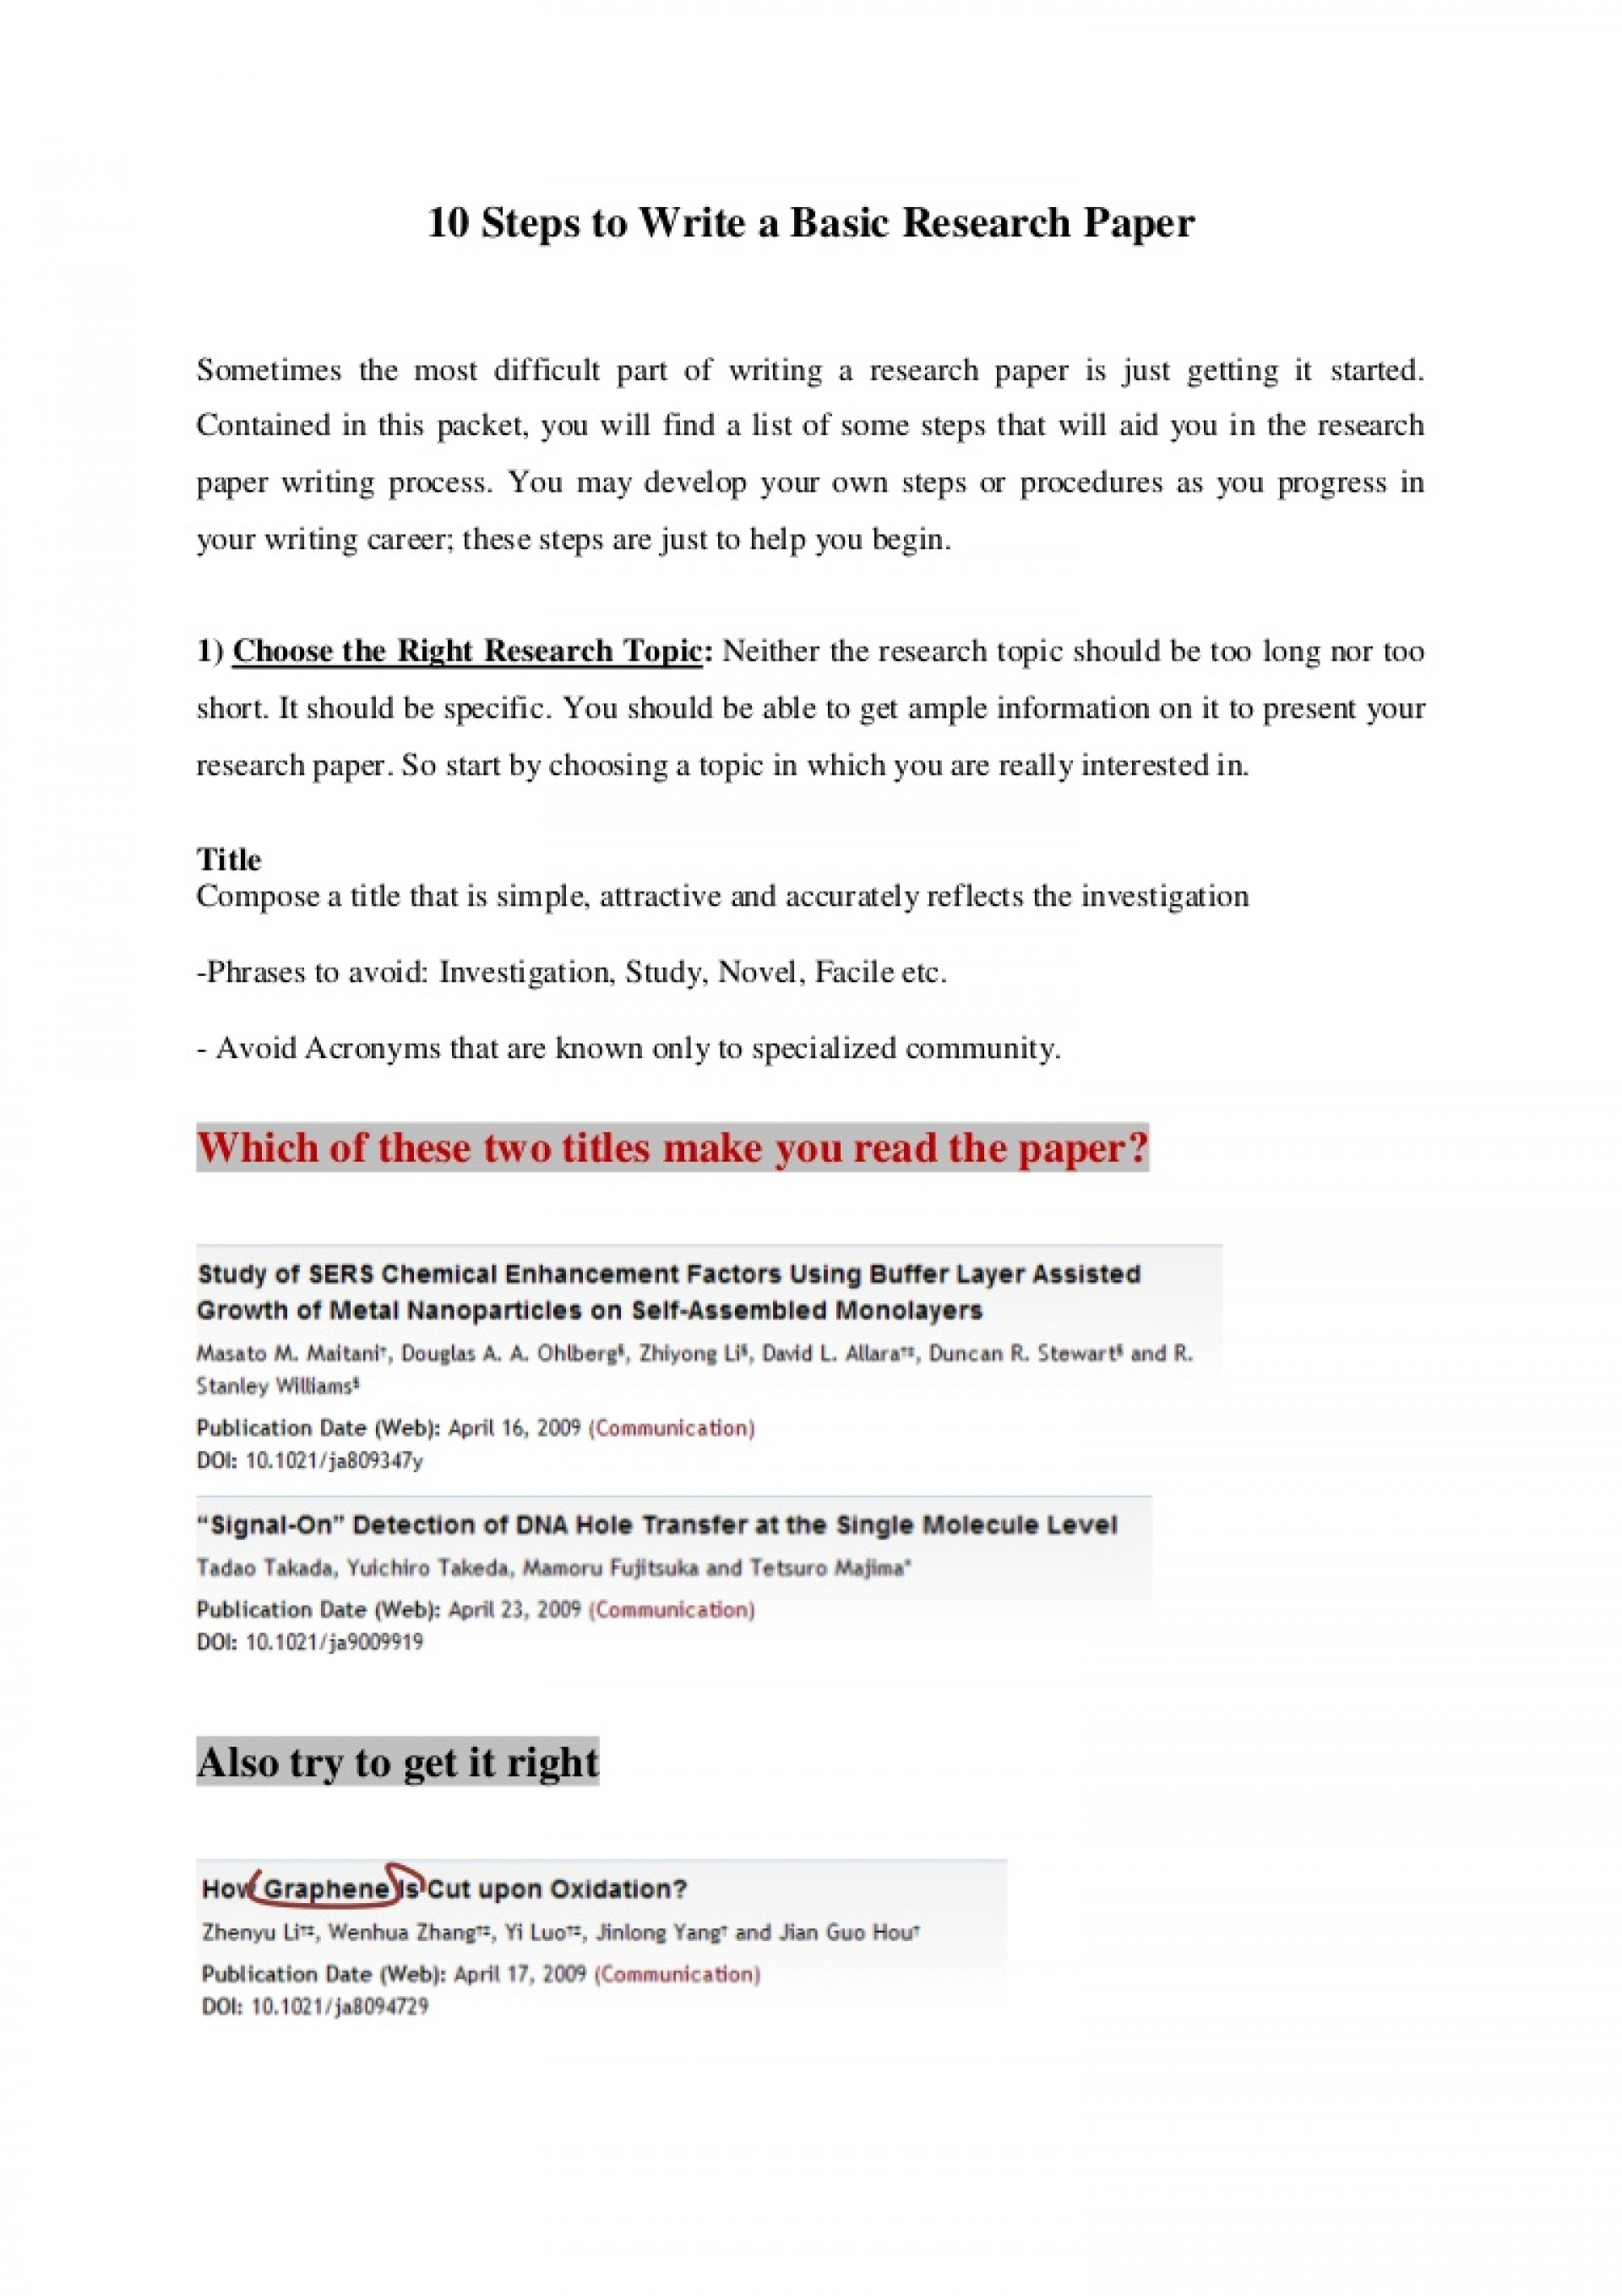 003 10stepstowriteabasicresearchpaper Thumbnail Research Paper Steps Frightening Writing 12 Ten For Papers To A 10 Page 1920